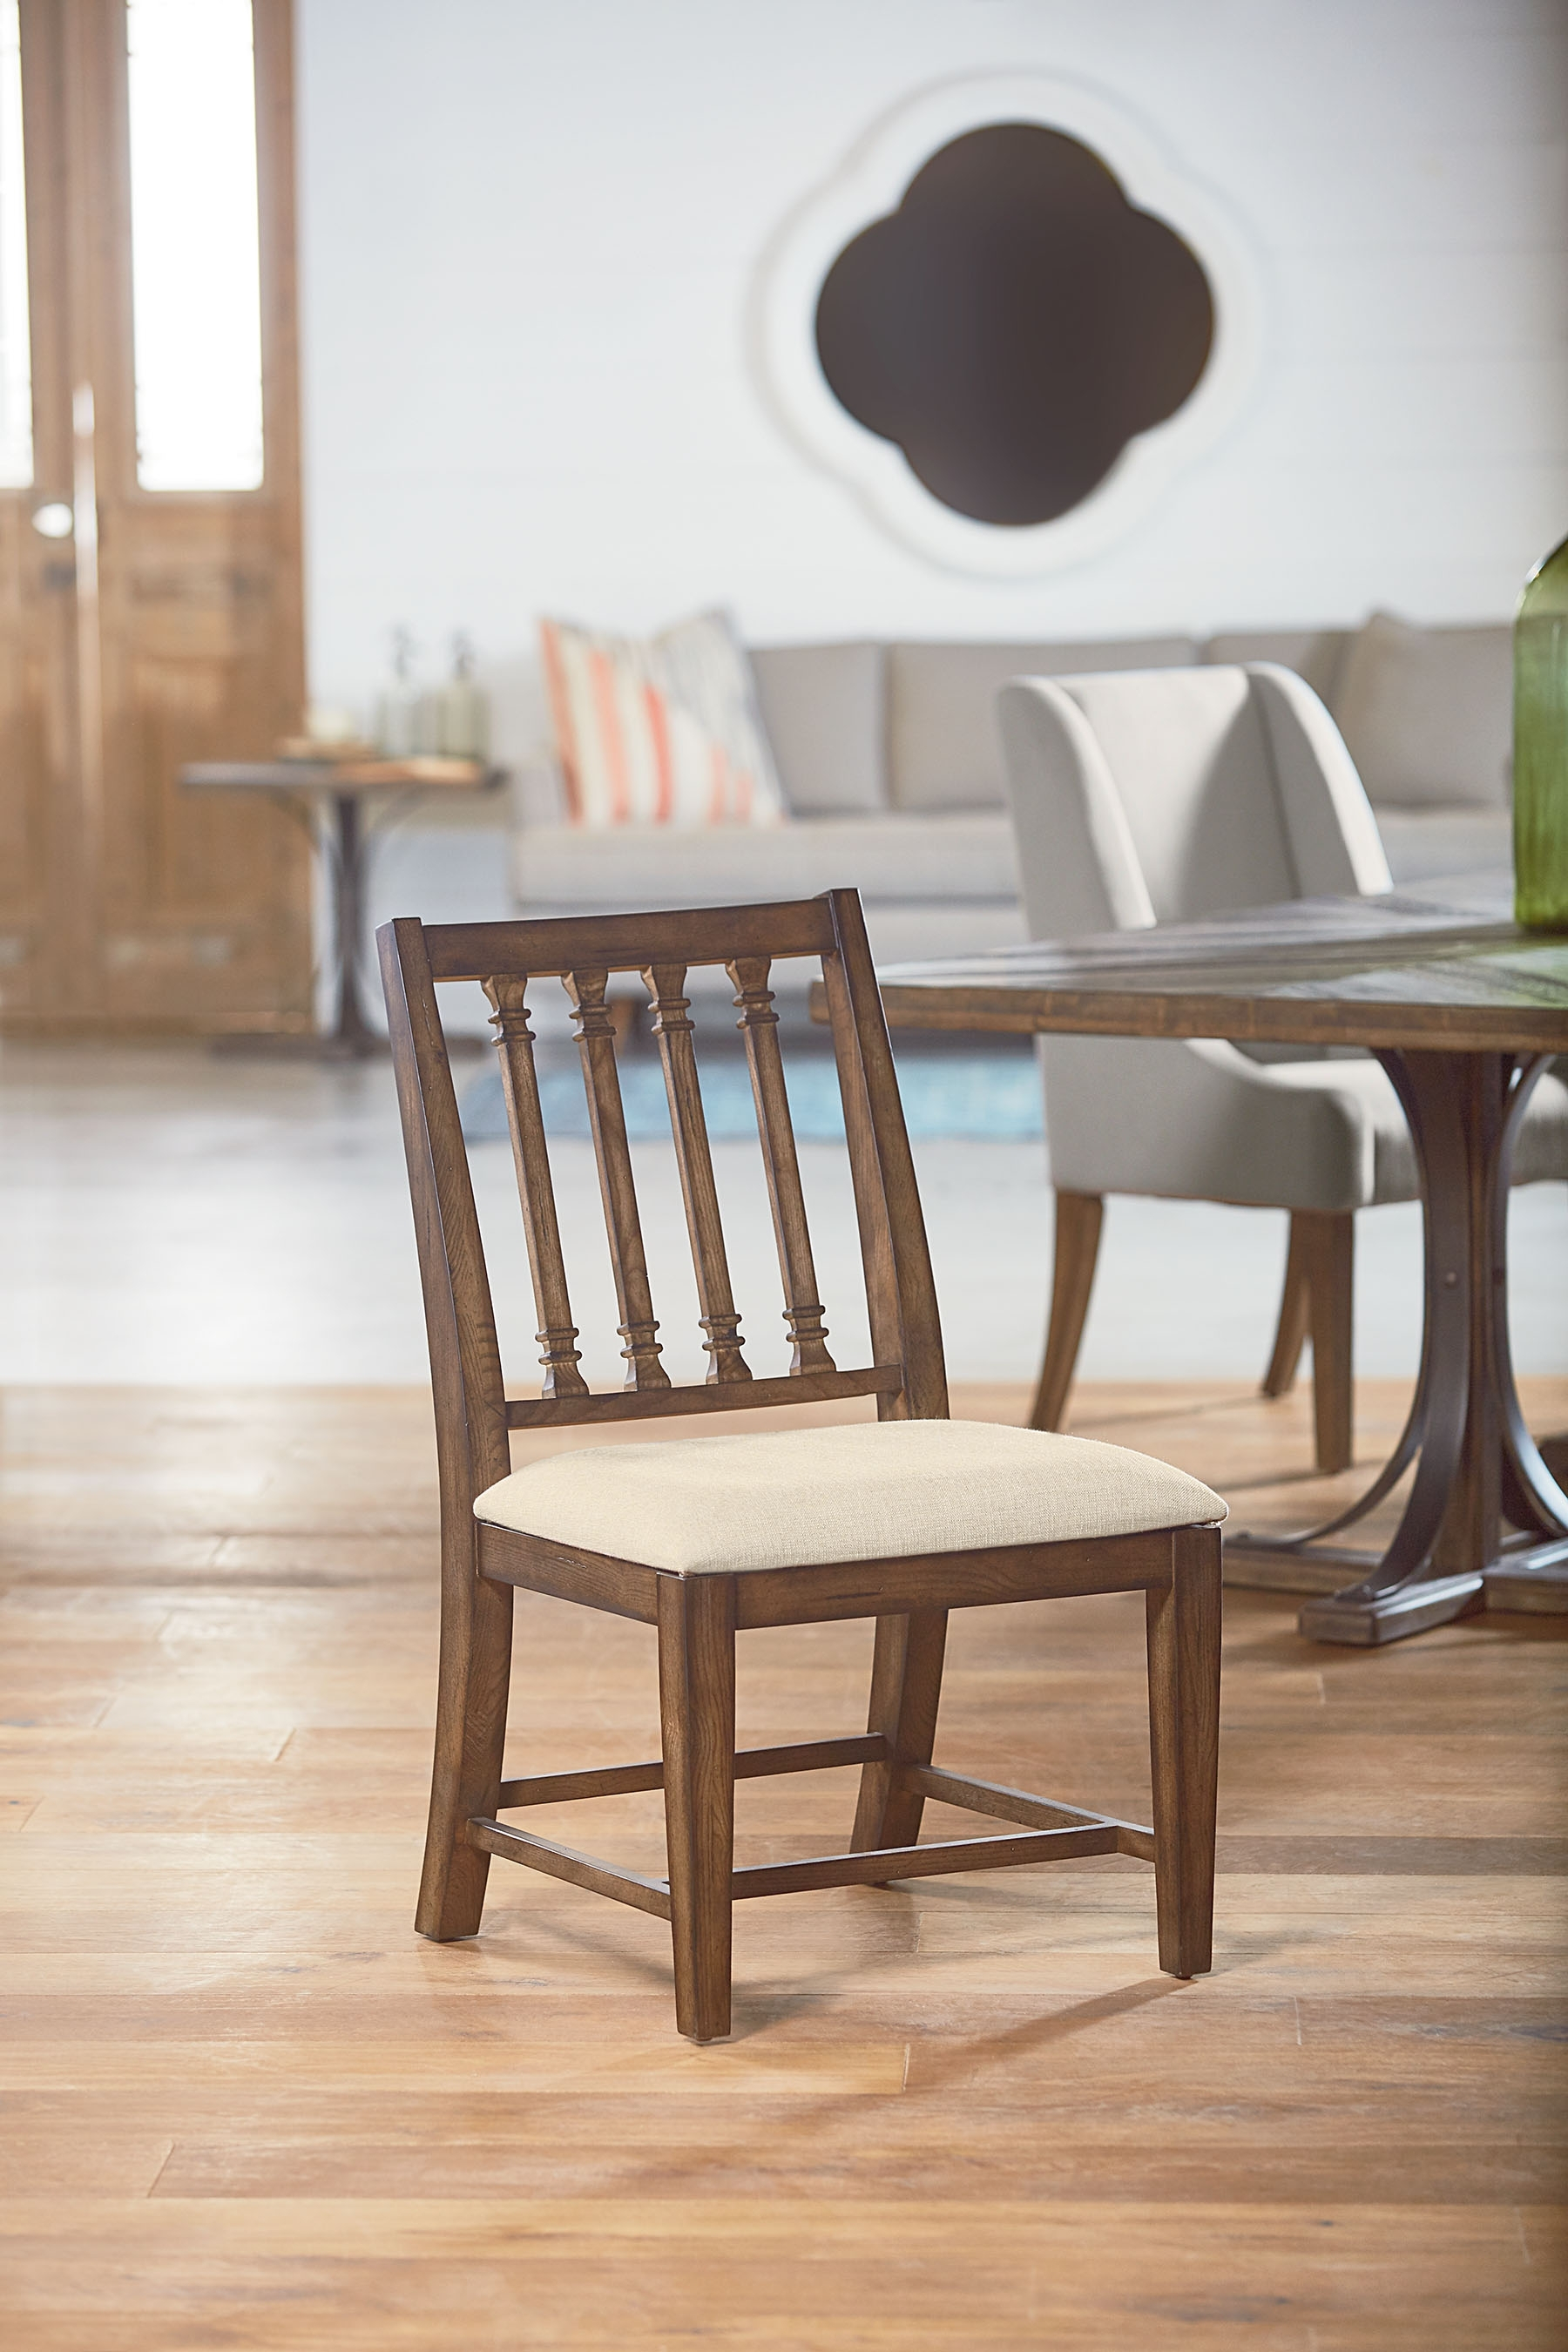 2019 Magnolia Home Revival Arm Chairs For Revival Side Chair – Magnolia Home (#1 of 20)